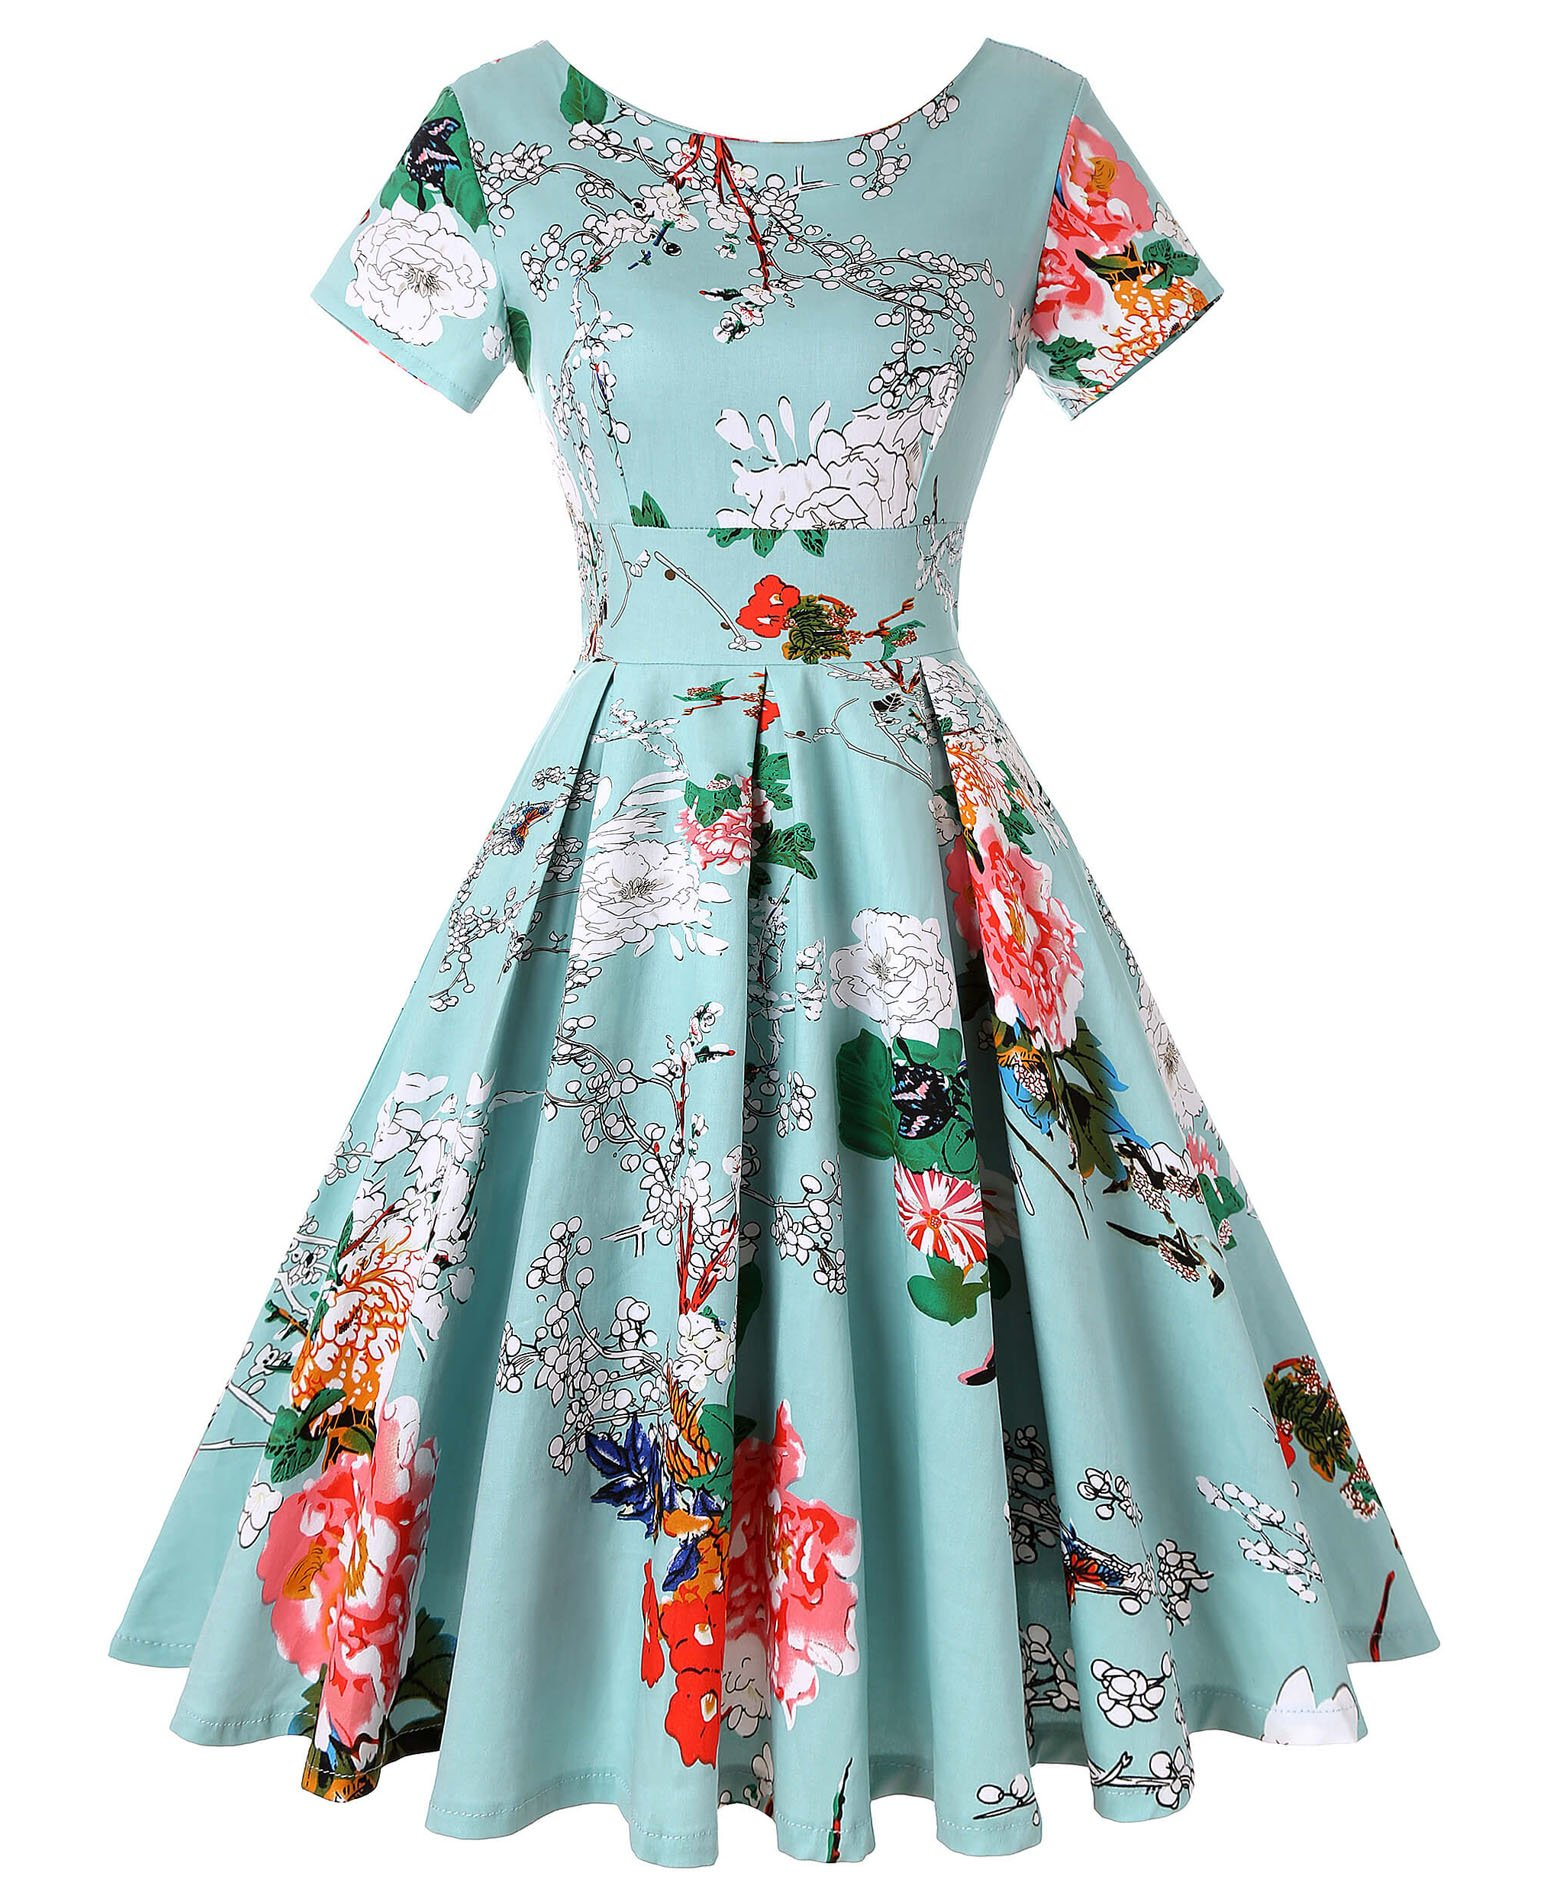 ROOSEY Womens Vintage Dresses Floral Print Rockabilly Swing Prom Cocktail Dress Short Sleeve, Pattern 2, XX-Large